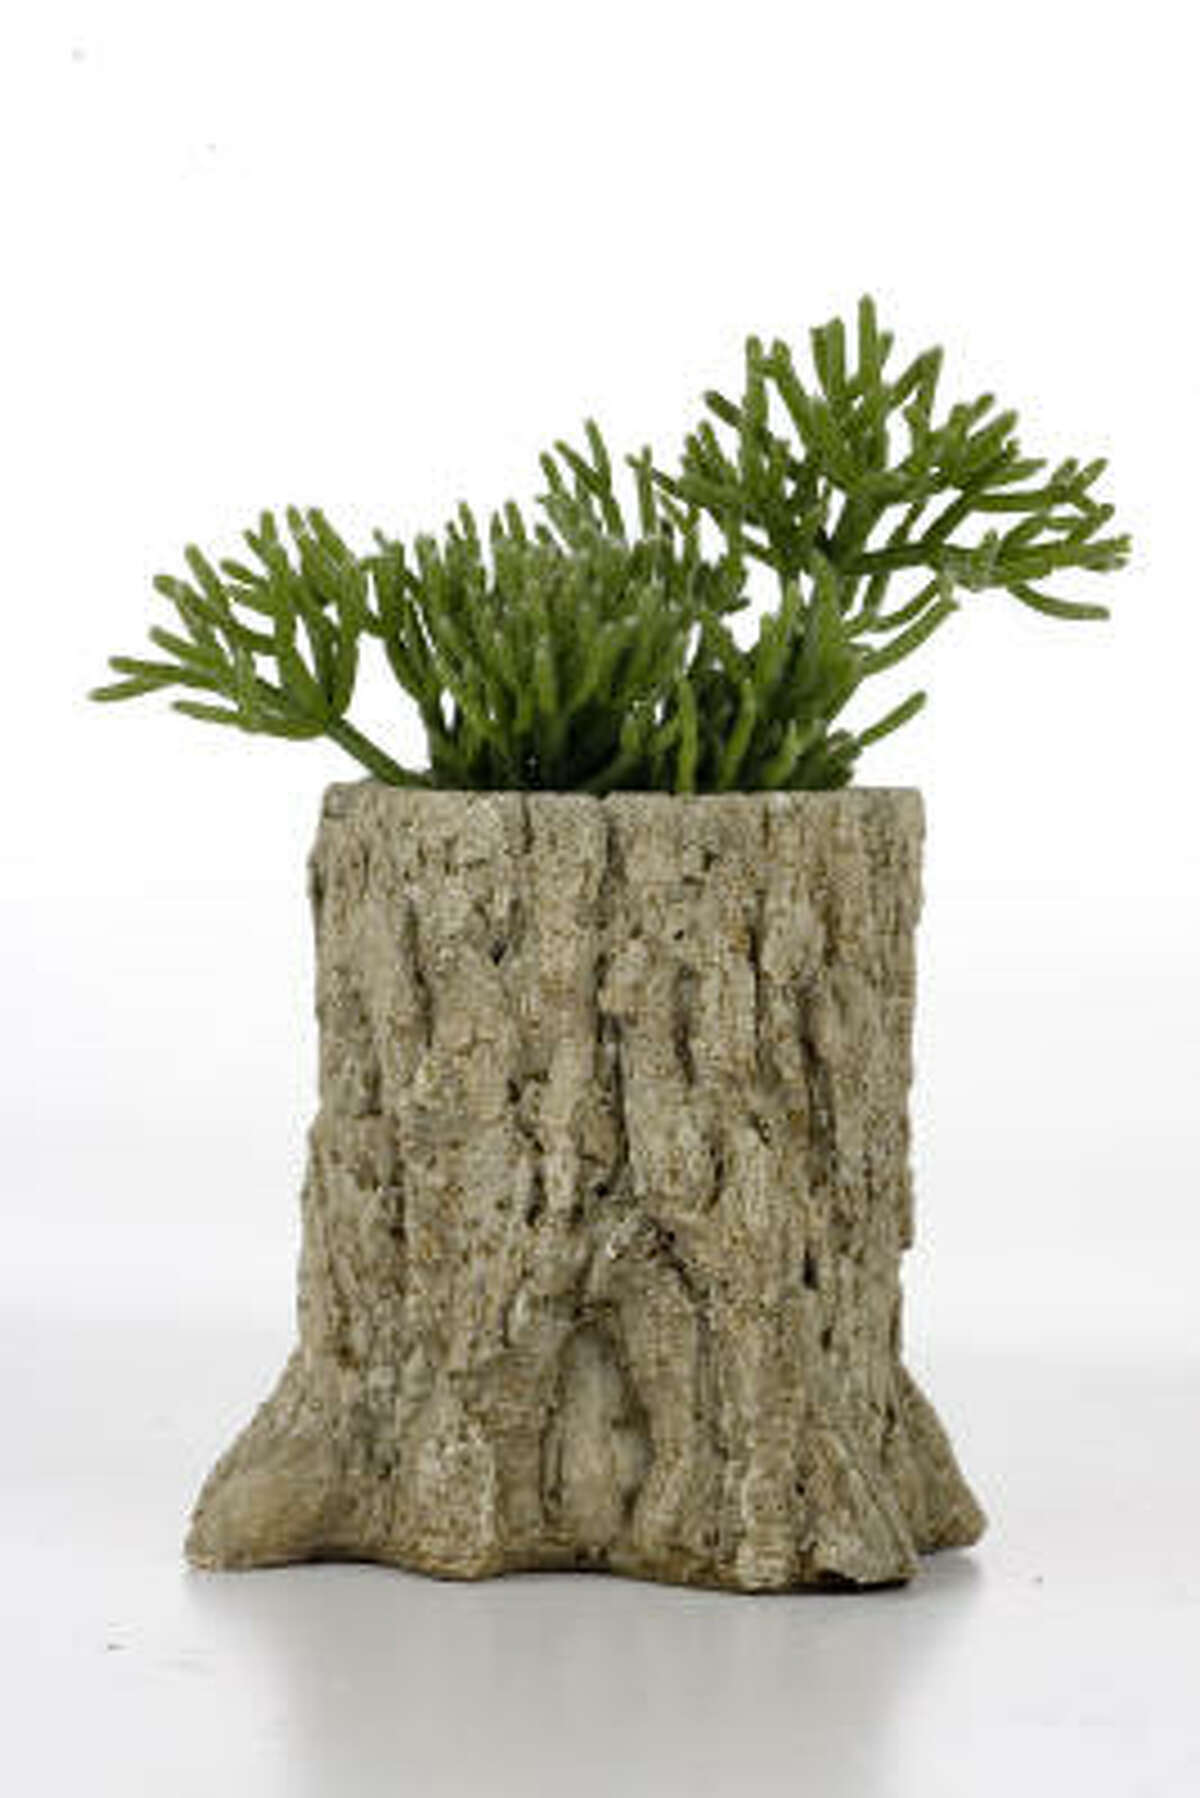 Faux bois plant holder $17, from Thompson+Hanson in 2007. Faux bois artist Donald Tucker   Submit your photos   Plant Database   HoustonGrows.com